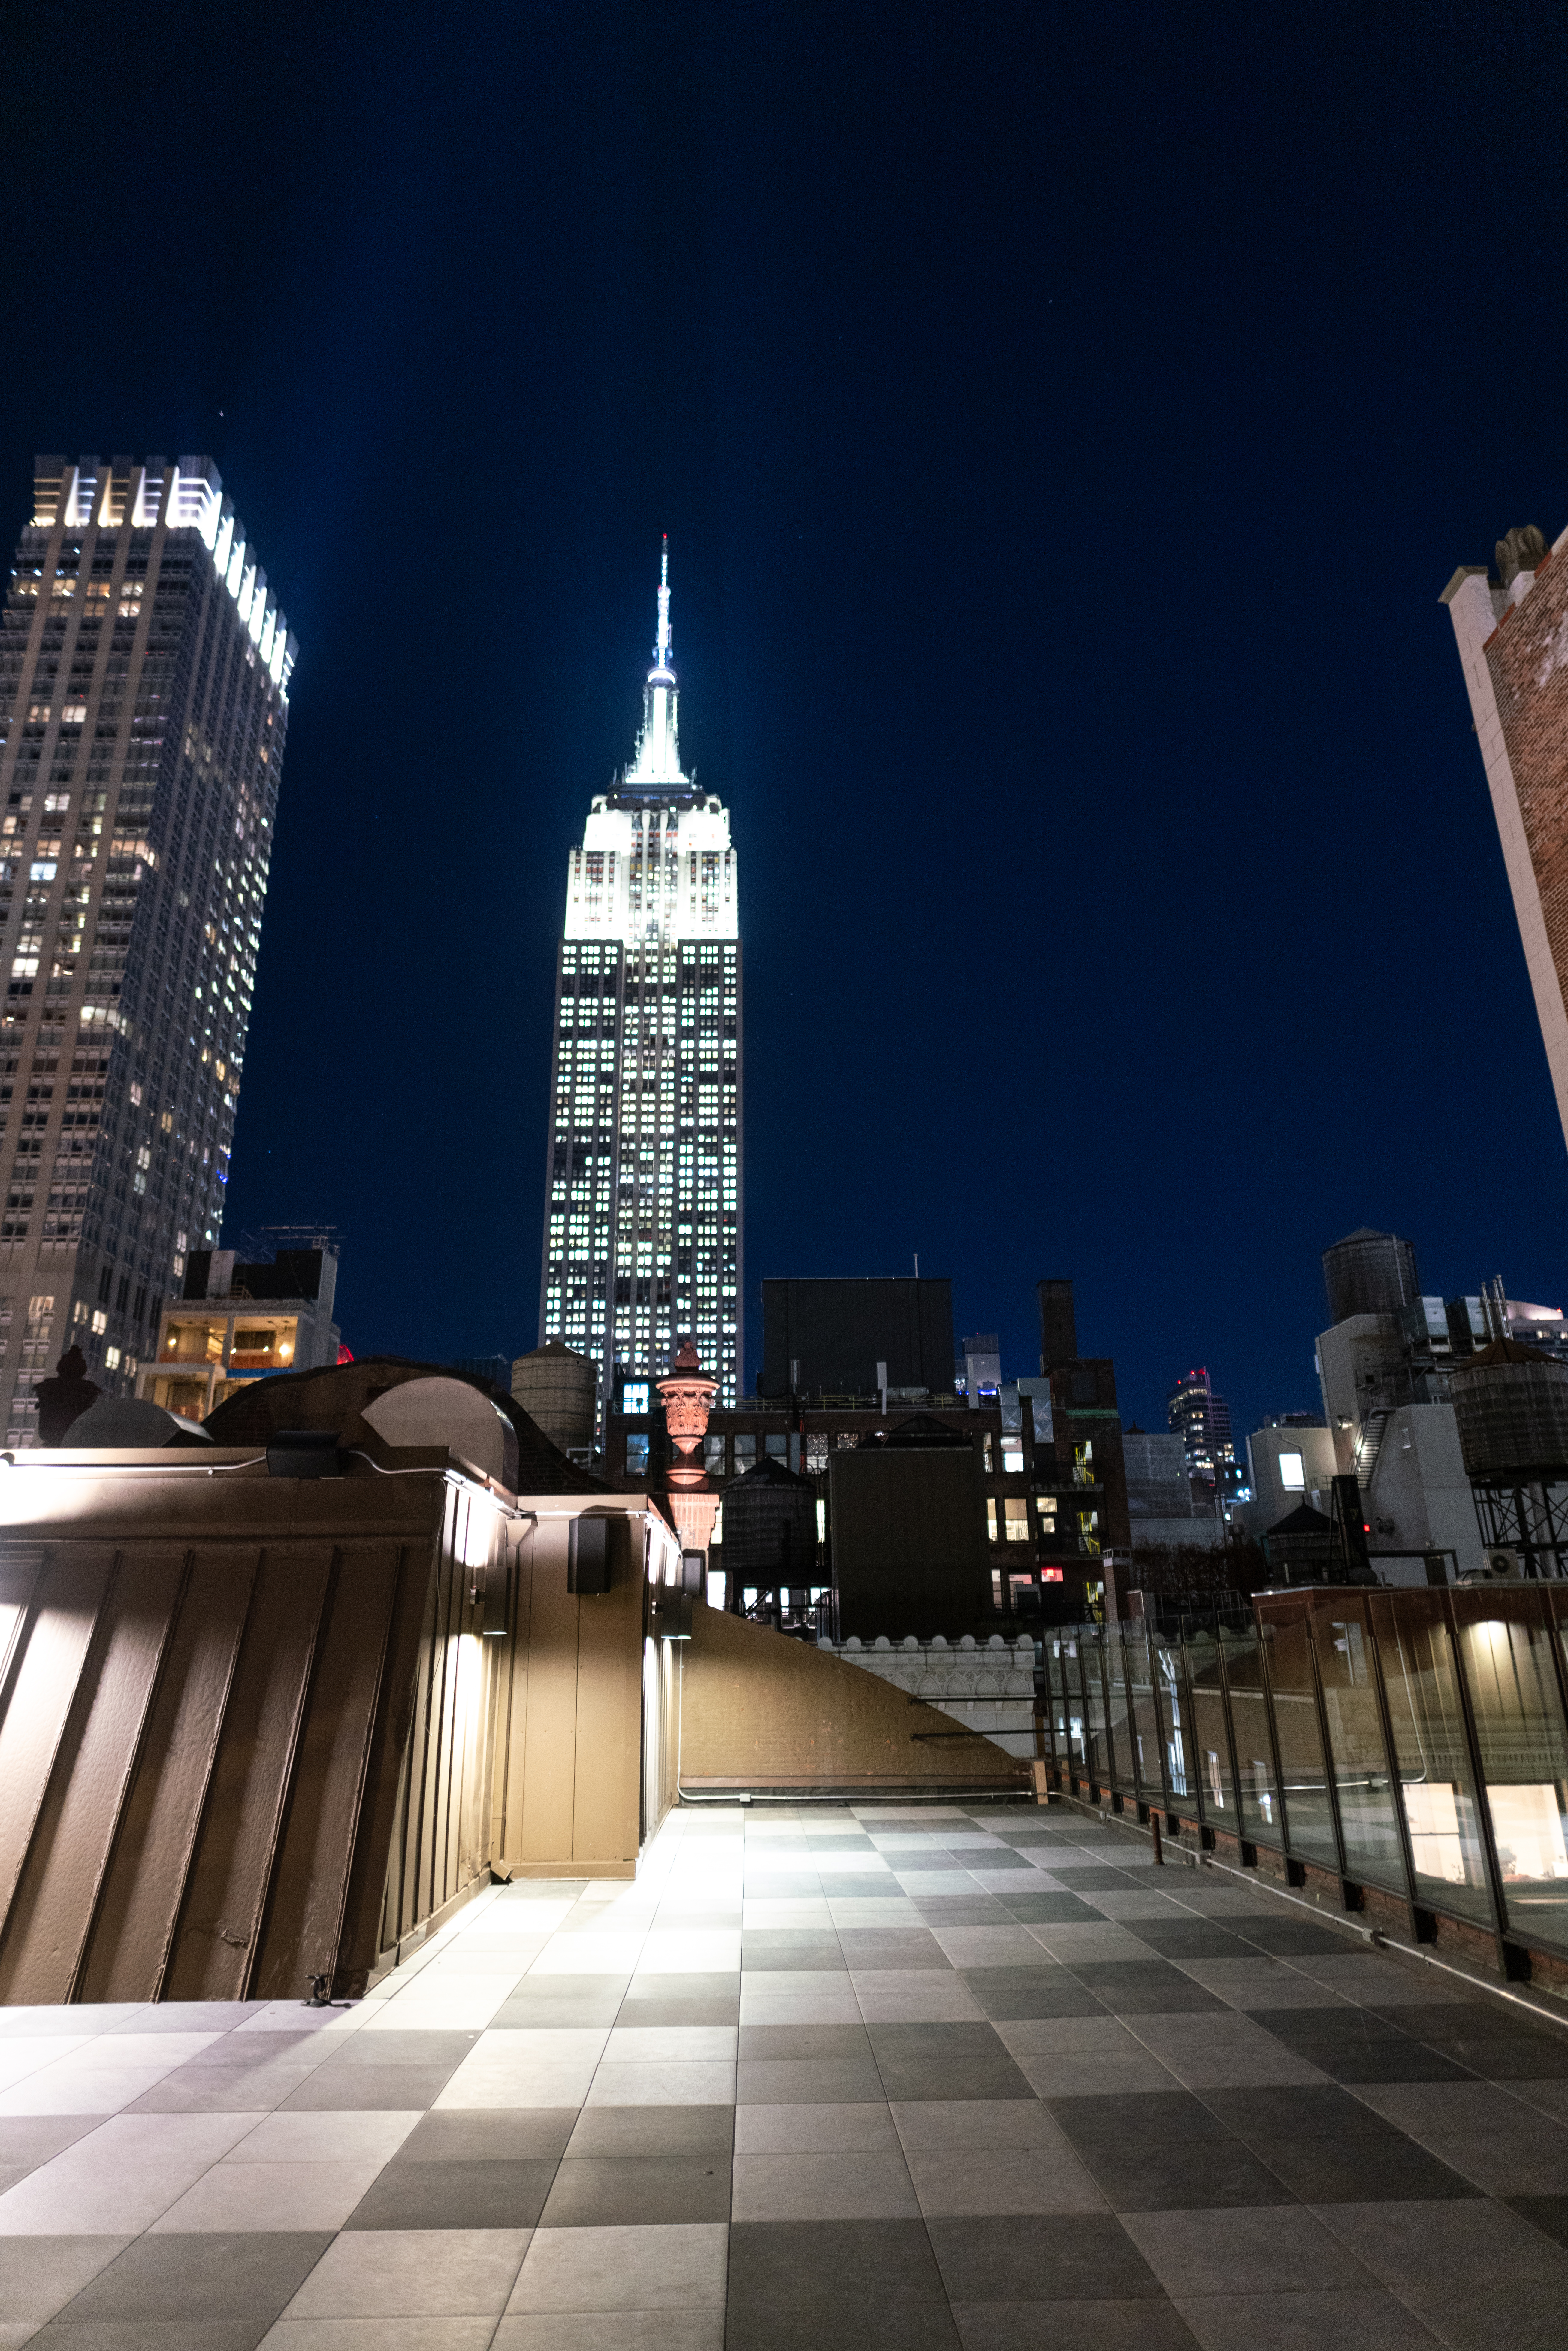 Photo #11 Roof Terrace at NYC Roof Terrace